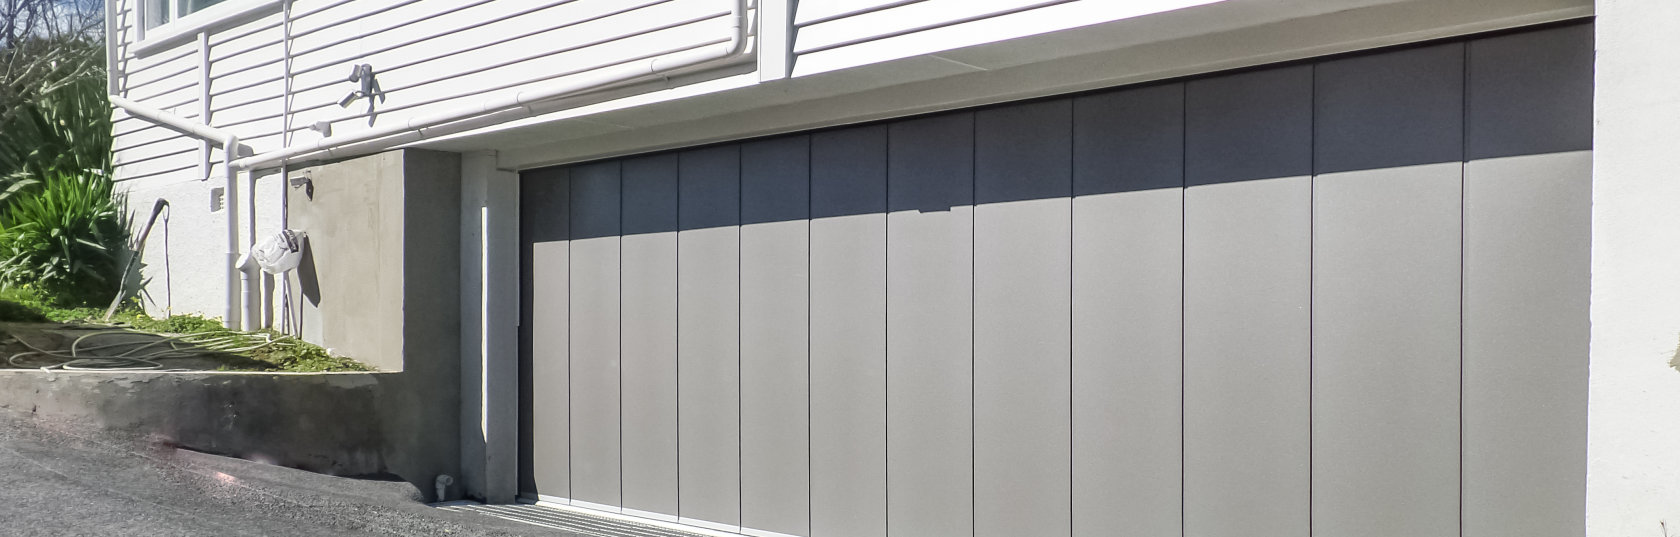 The statement, barn-style garage door